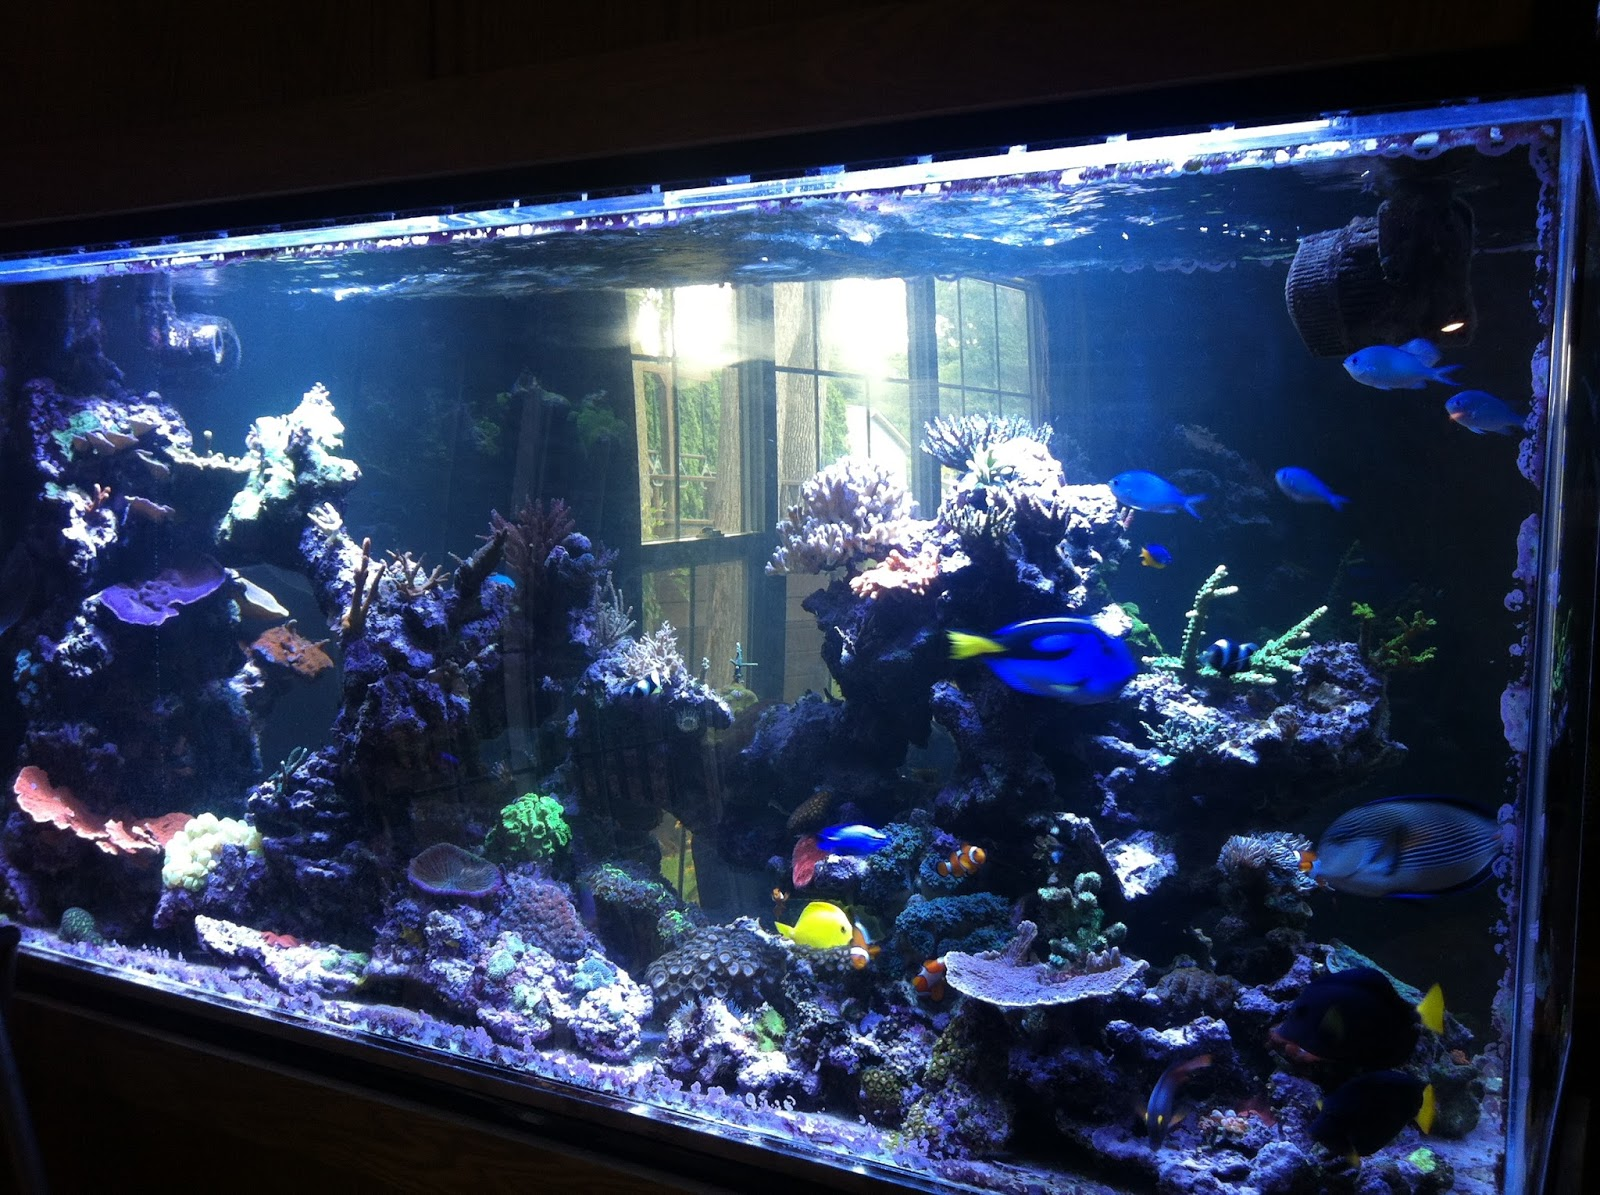 Life of tracy saltwater fish tank for Marine fish tanks